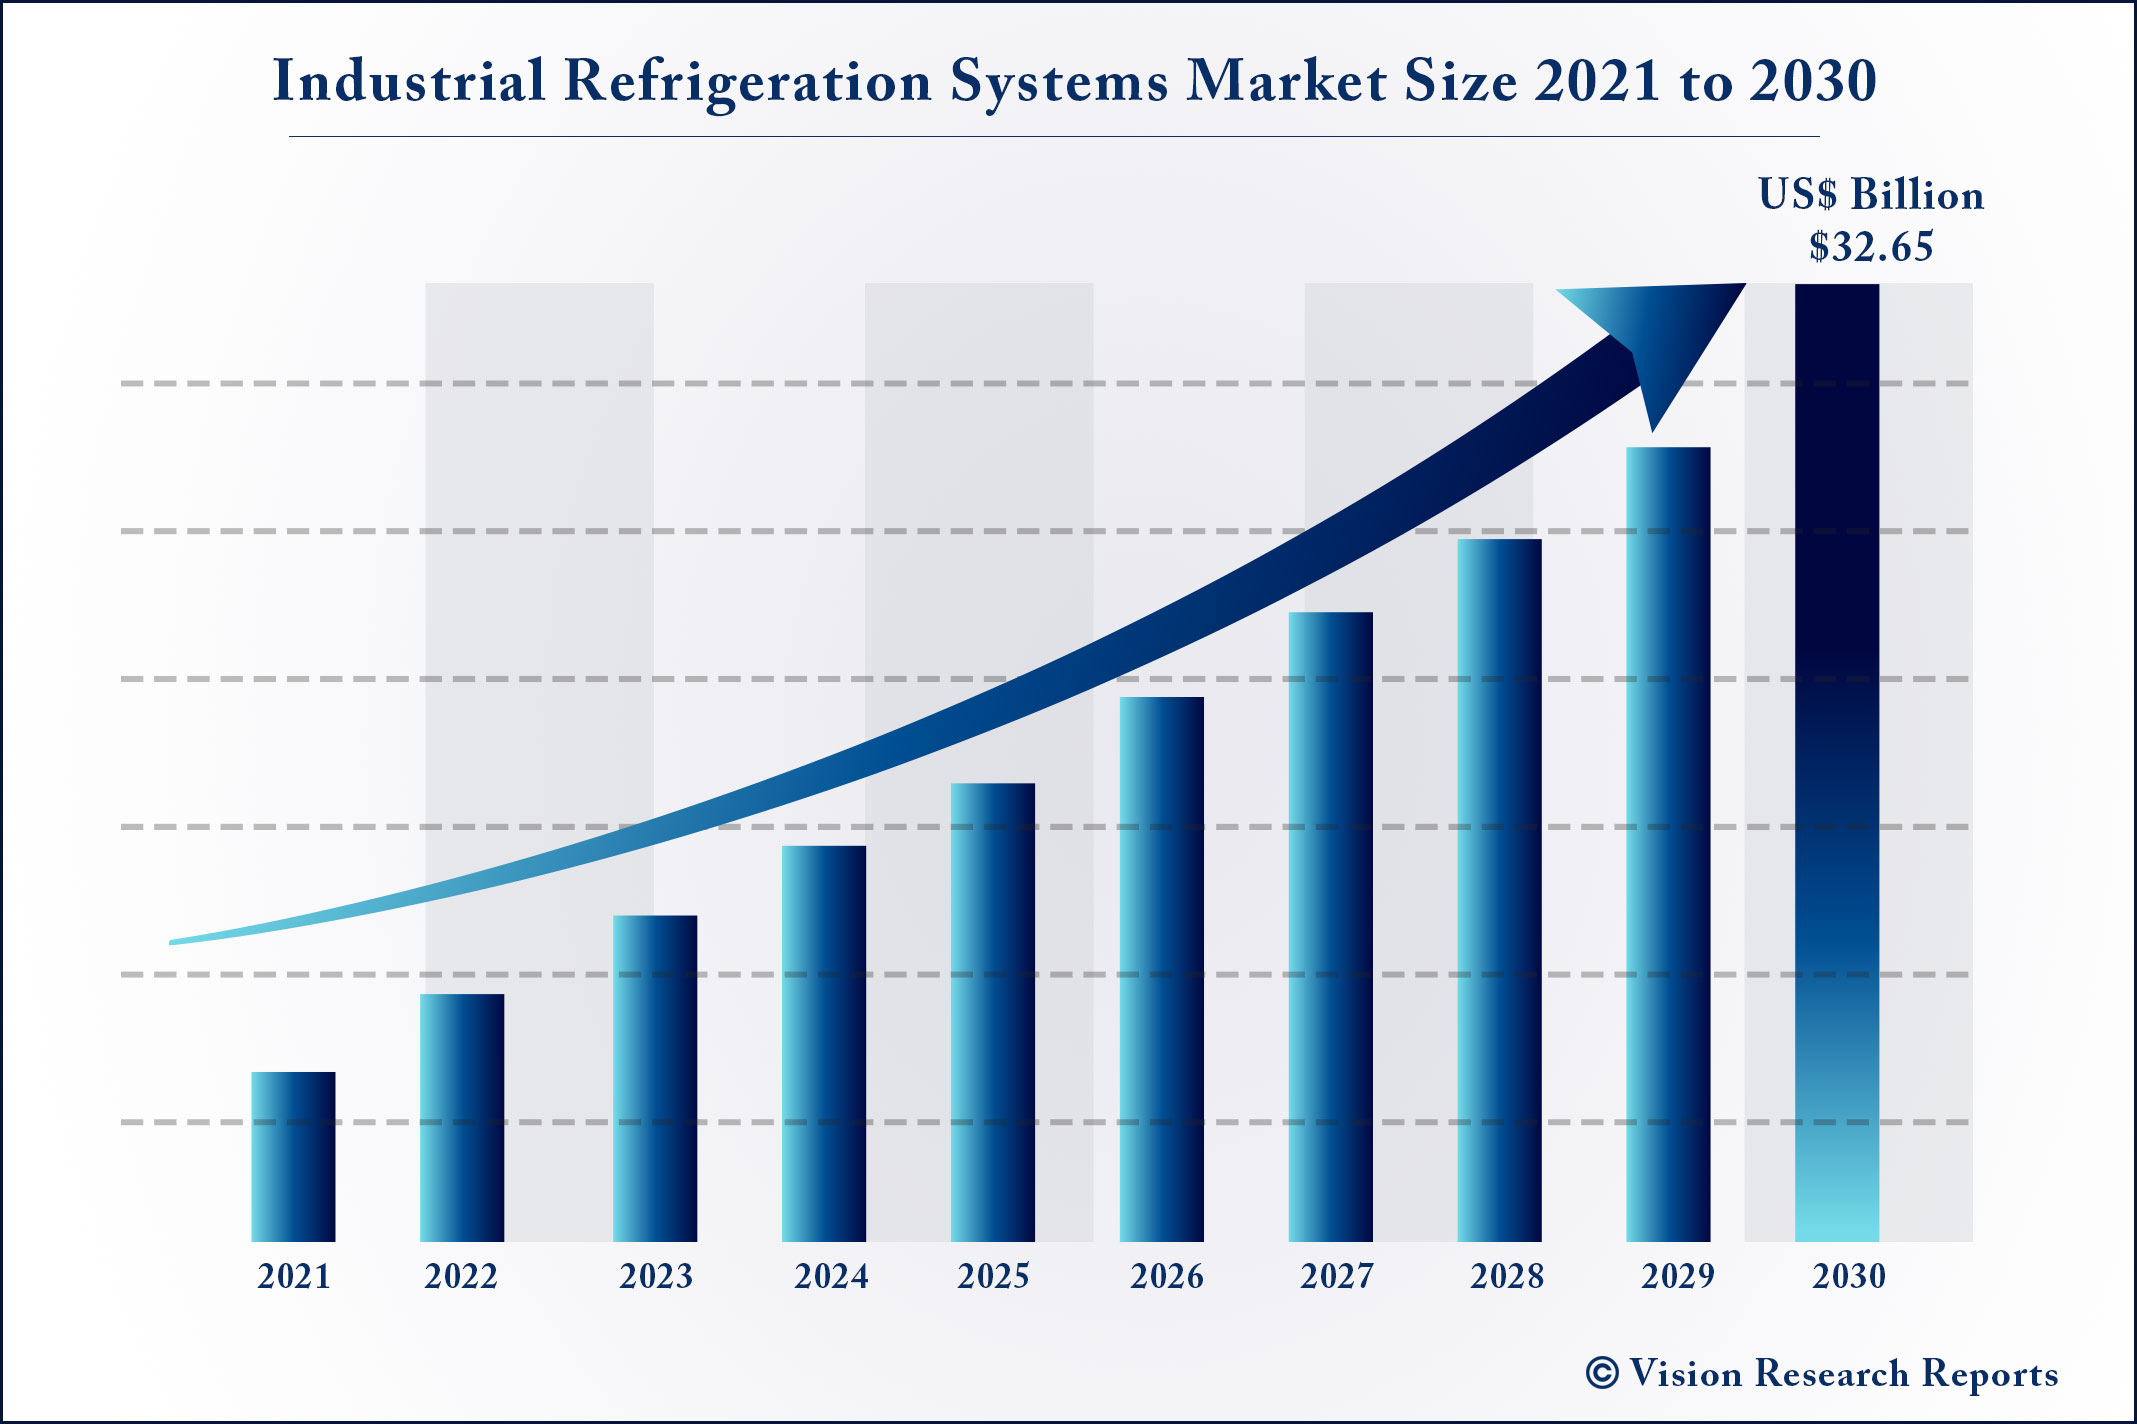 Industrial Refrigeration Systems Market Size 2021 to 2030